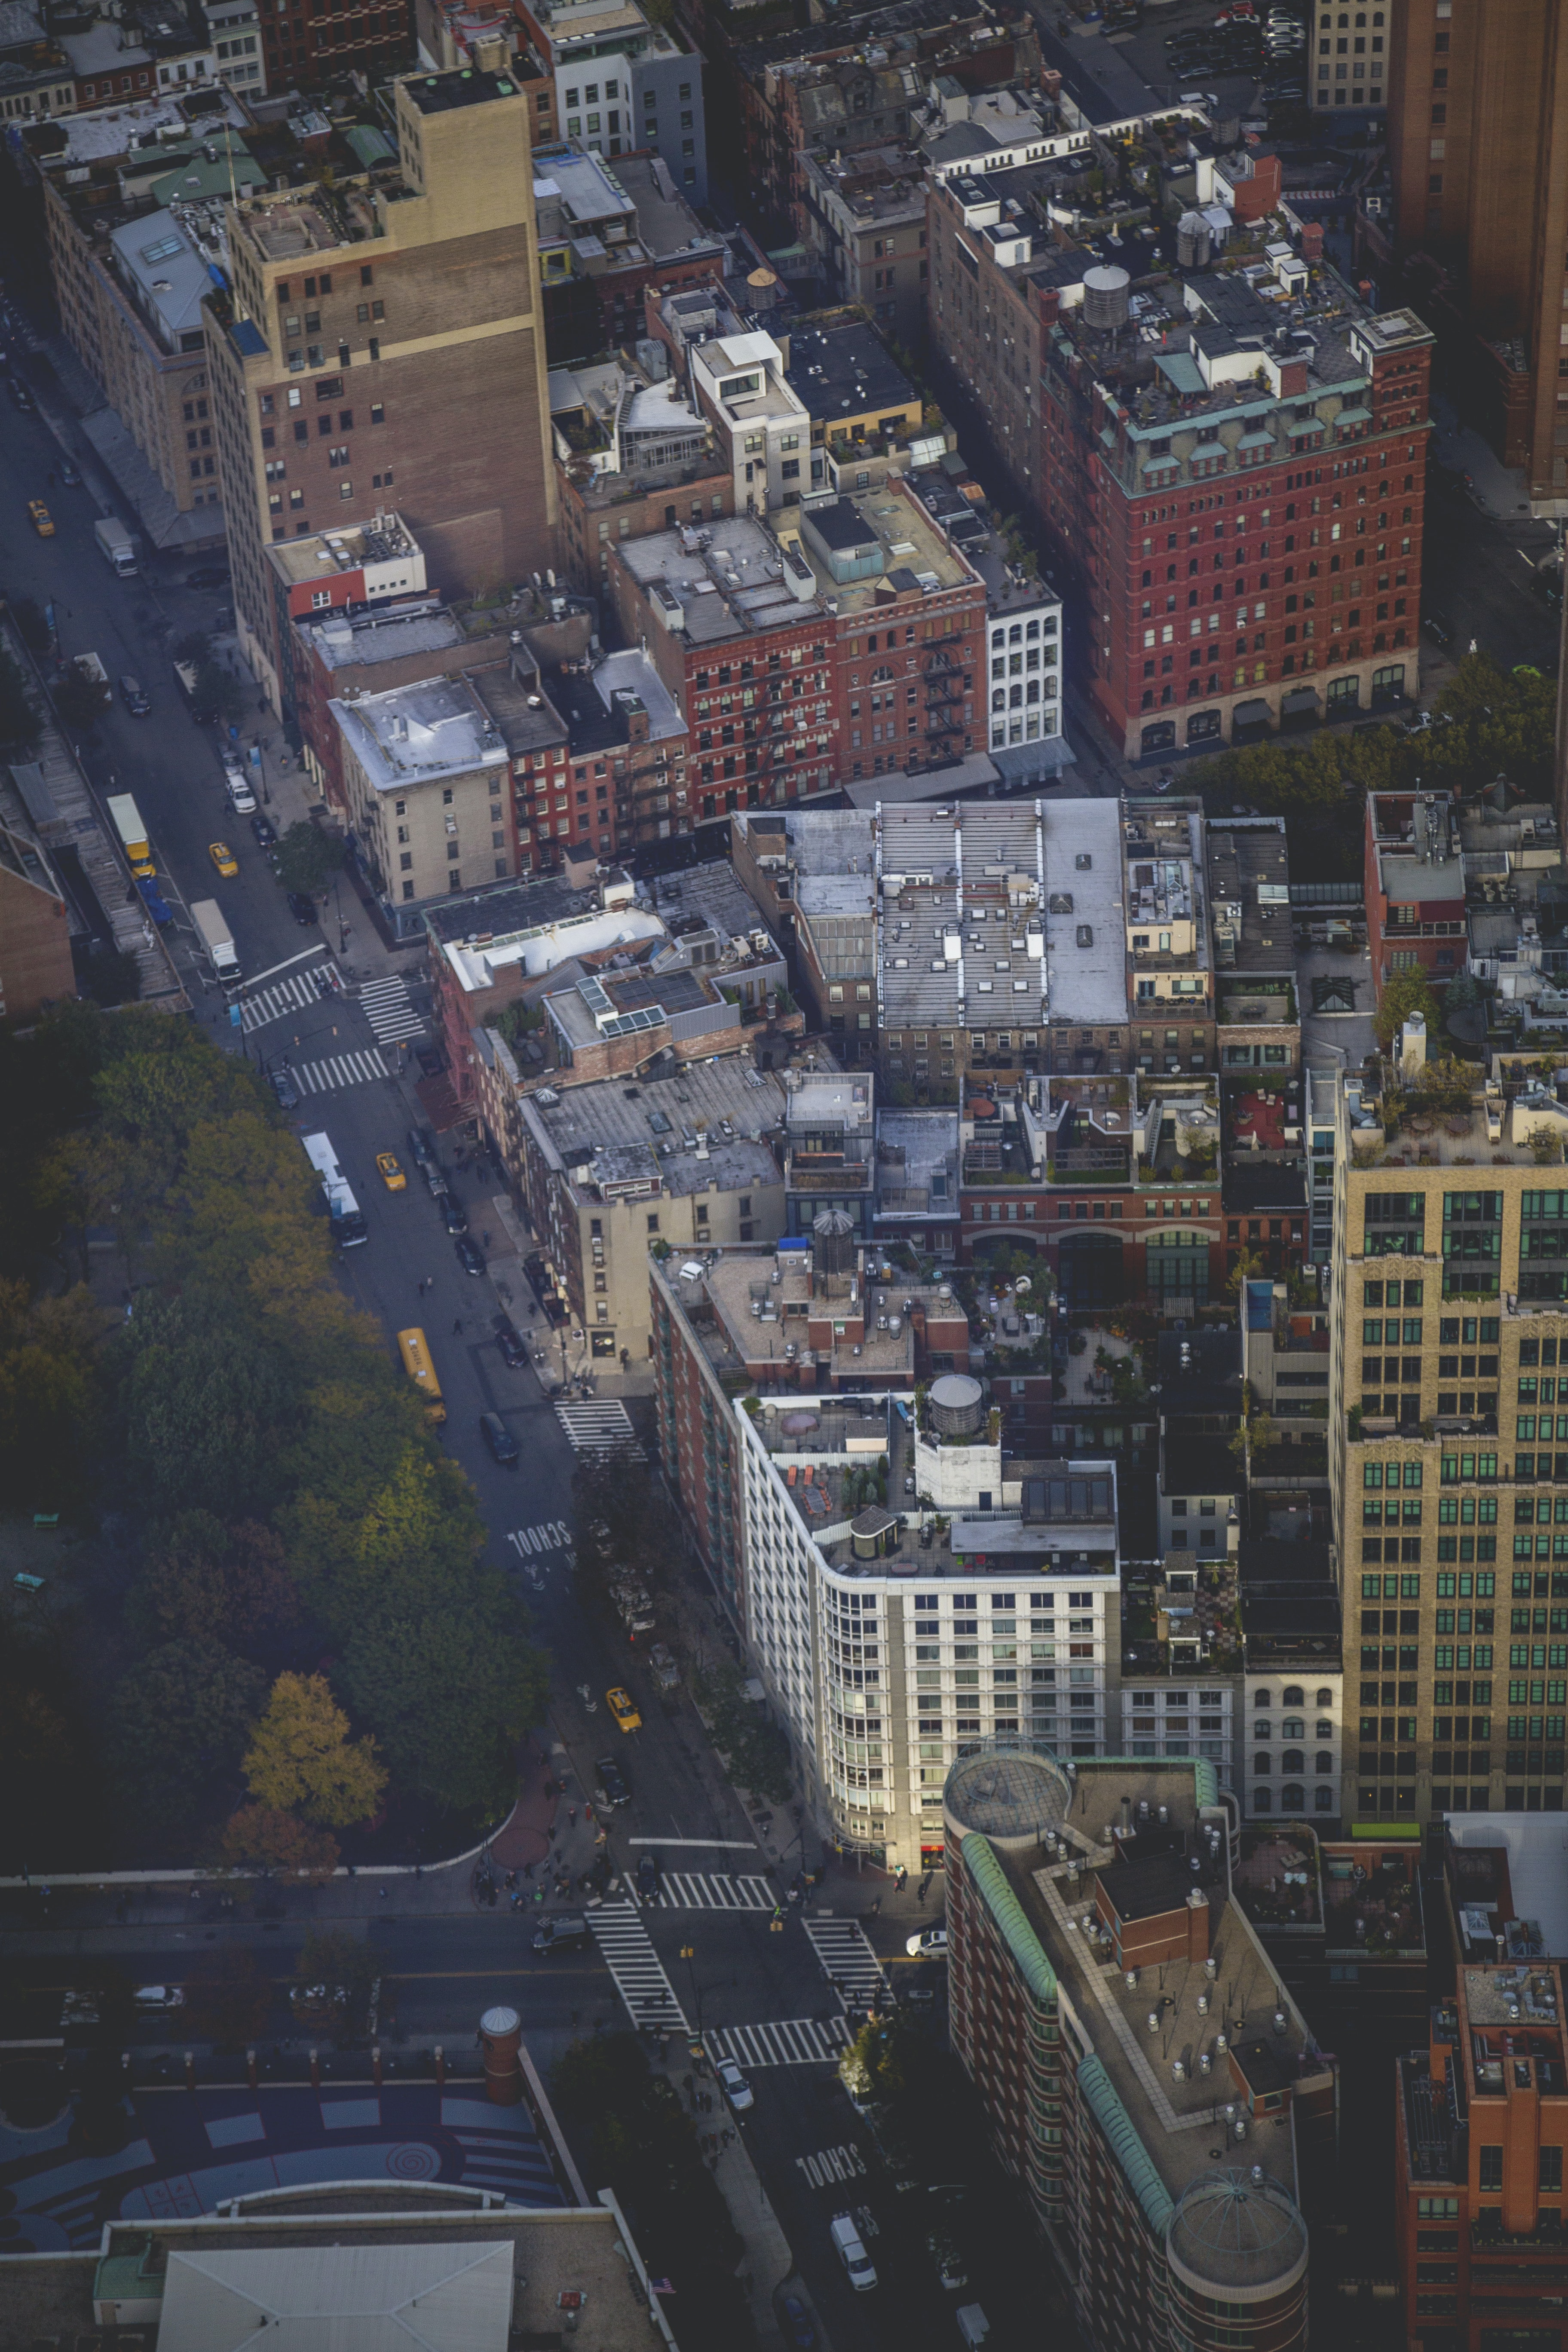 Drone shot of busy Manhattan street with daytime traffic and city buildings